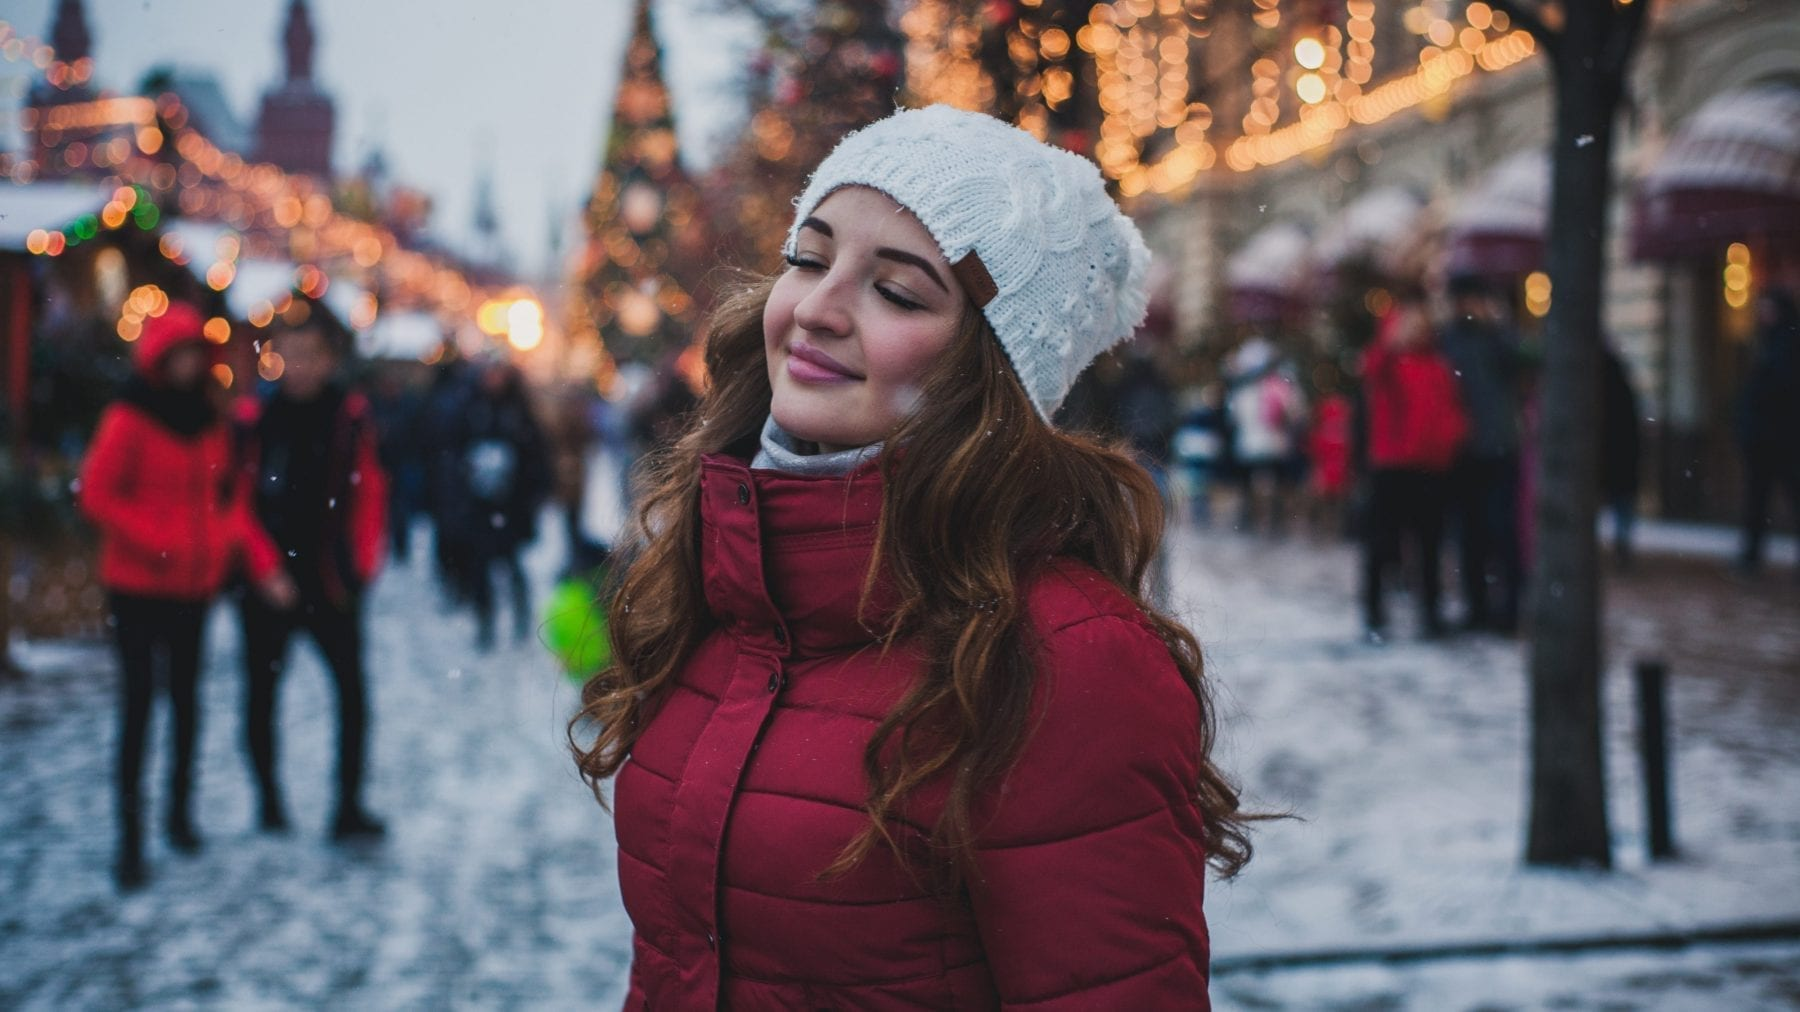 Our 5 Favorite Christmas-themed Influencer Campaigns